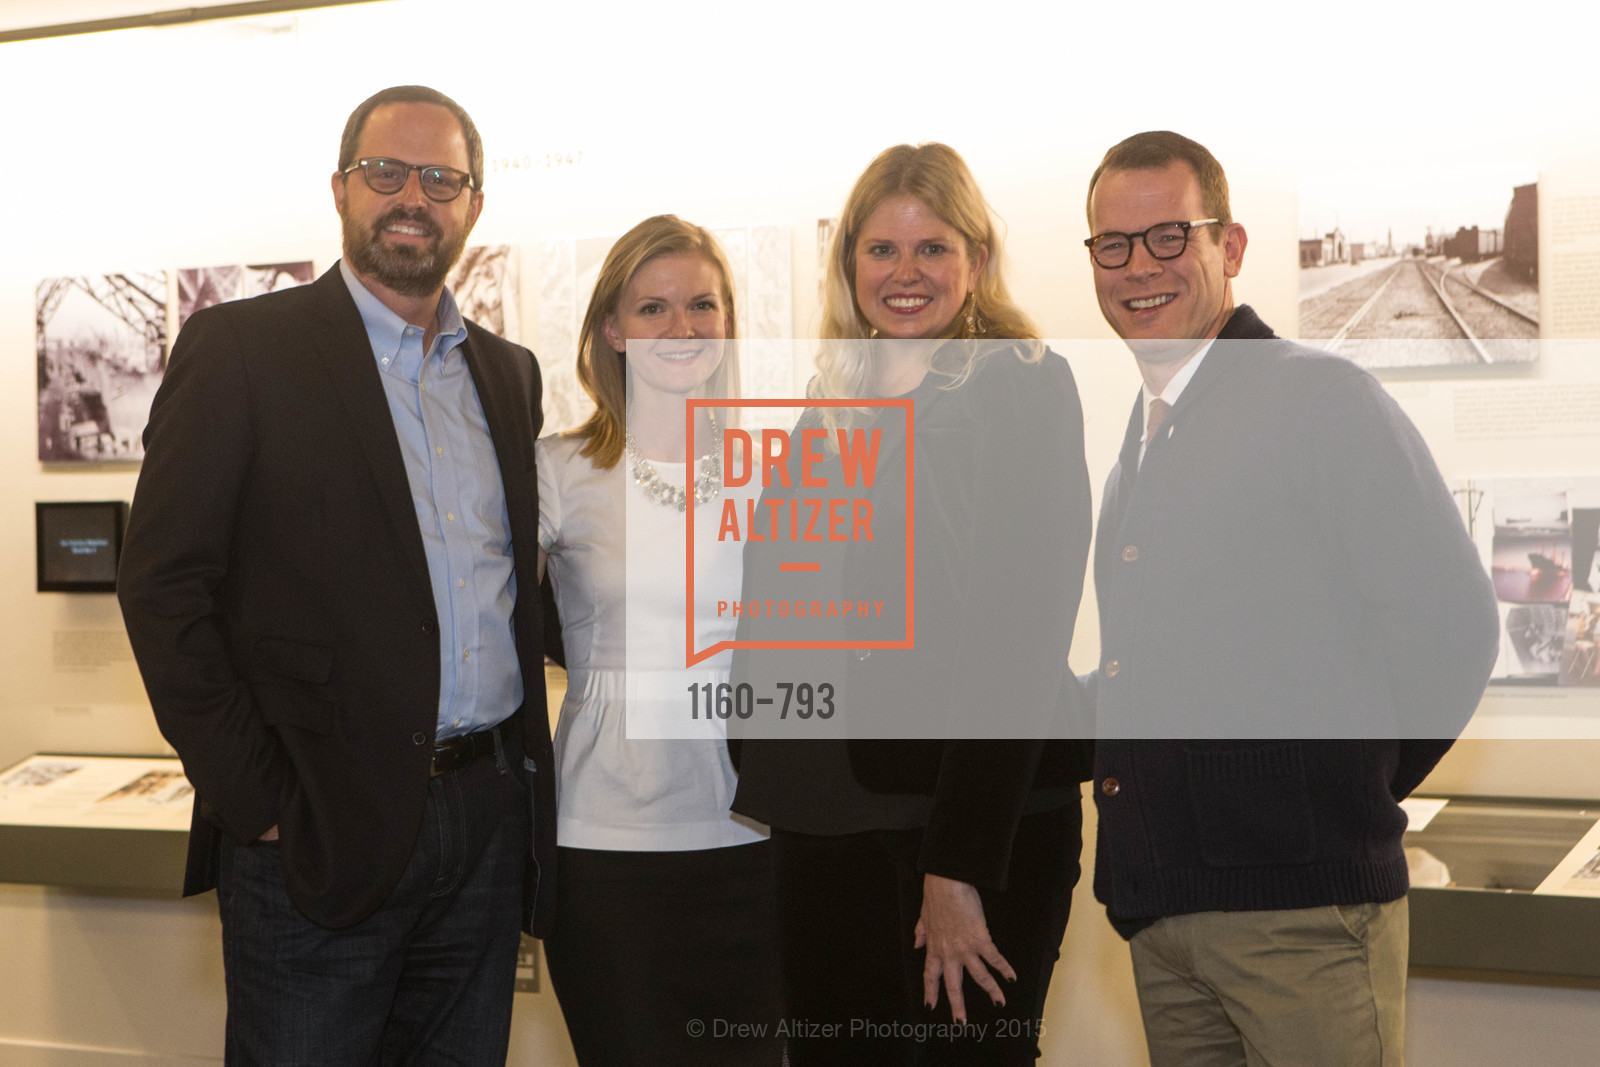 Justin Bank, Greer Goings, Julie Warbough, Benjamin Thompson, SF BRAVO CLUB Sneak Peek at the EXPLORATORIUM, US, April 23rd, 2015,Drew Altizer, Drew Altizer Photography, full-service agency, private events, San Francisco photographer, photographer california